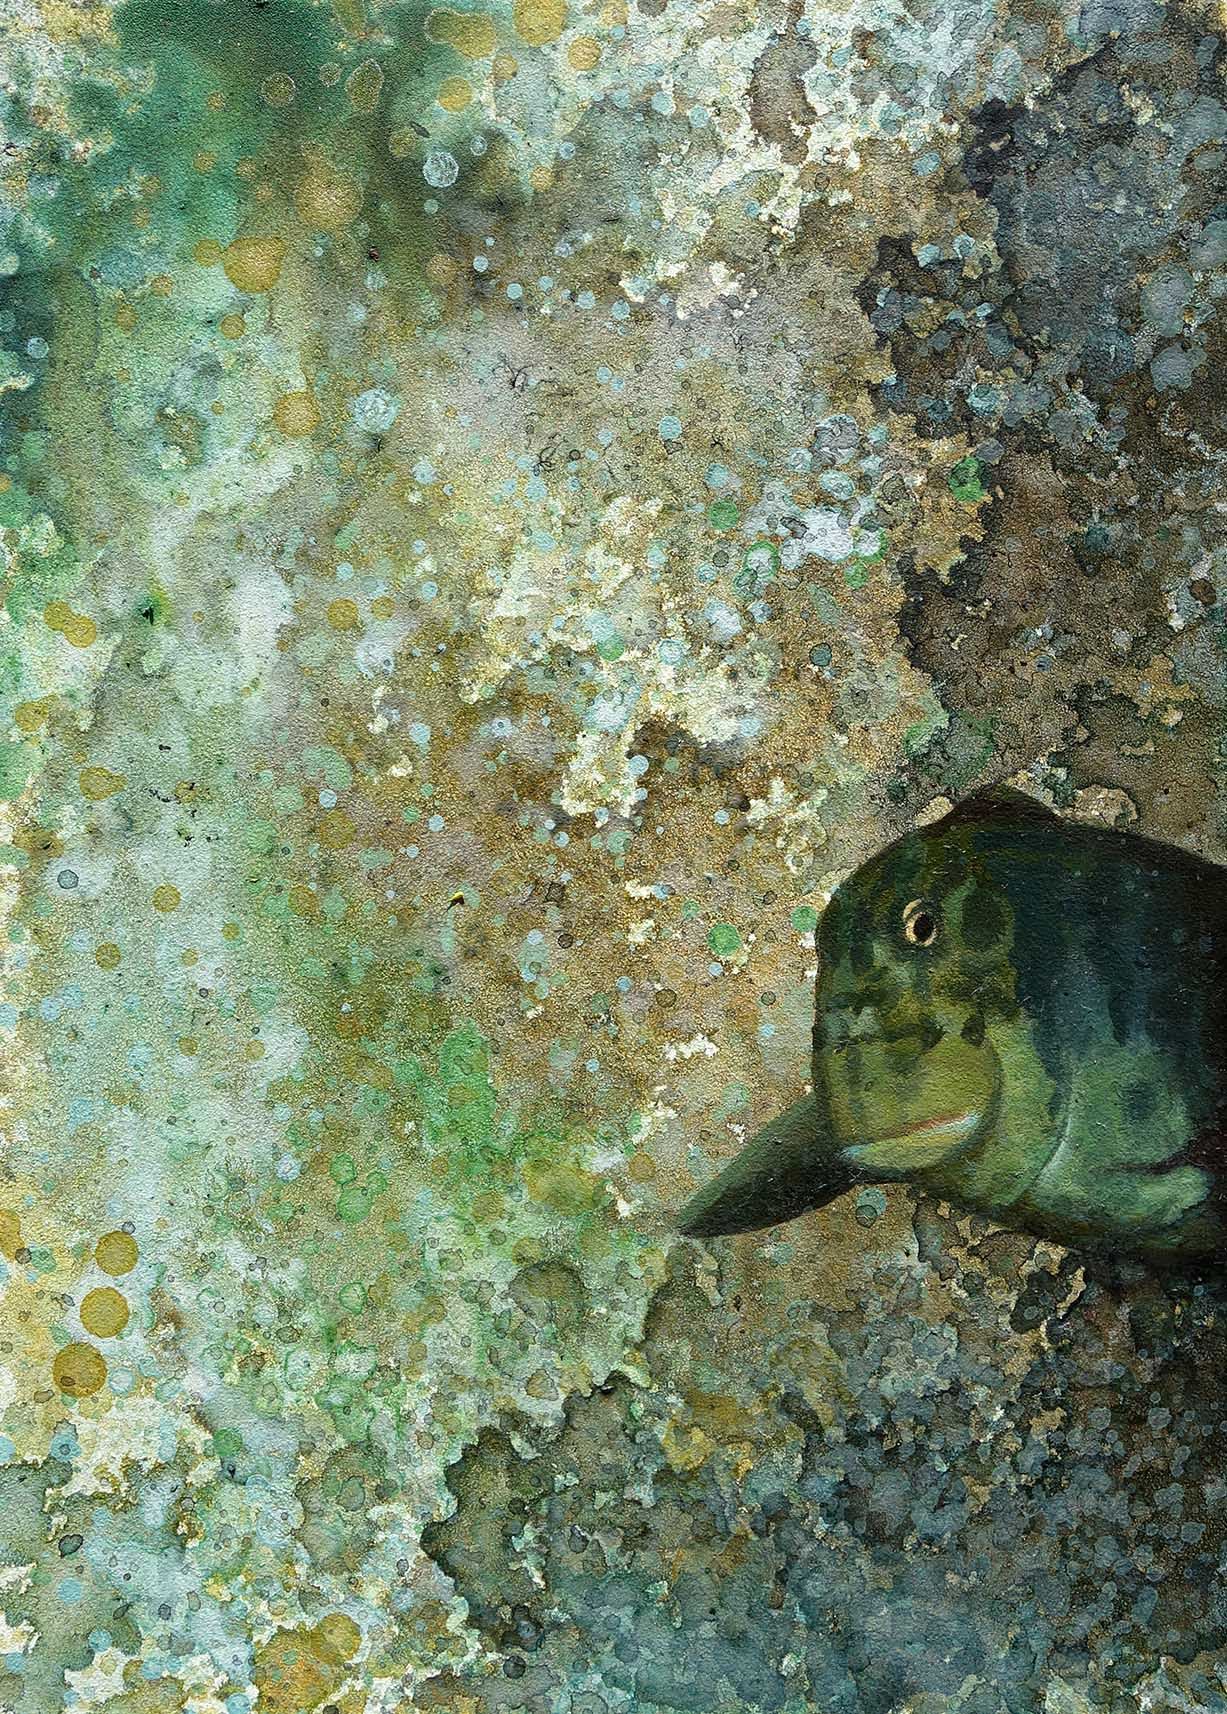 Shelby Prindaville Redlip Blenny Stage Left Painting.jpg